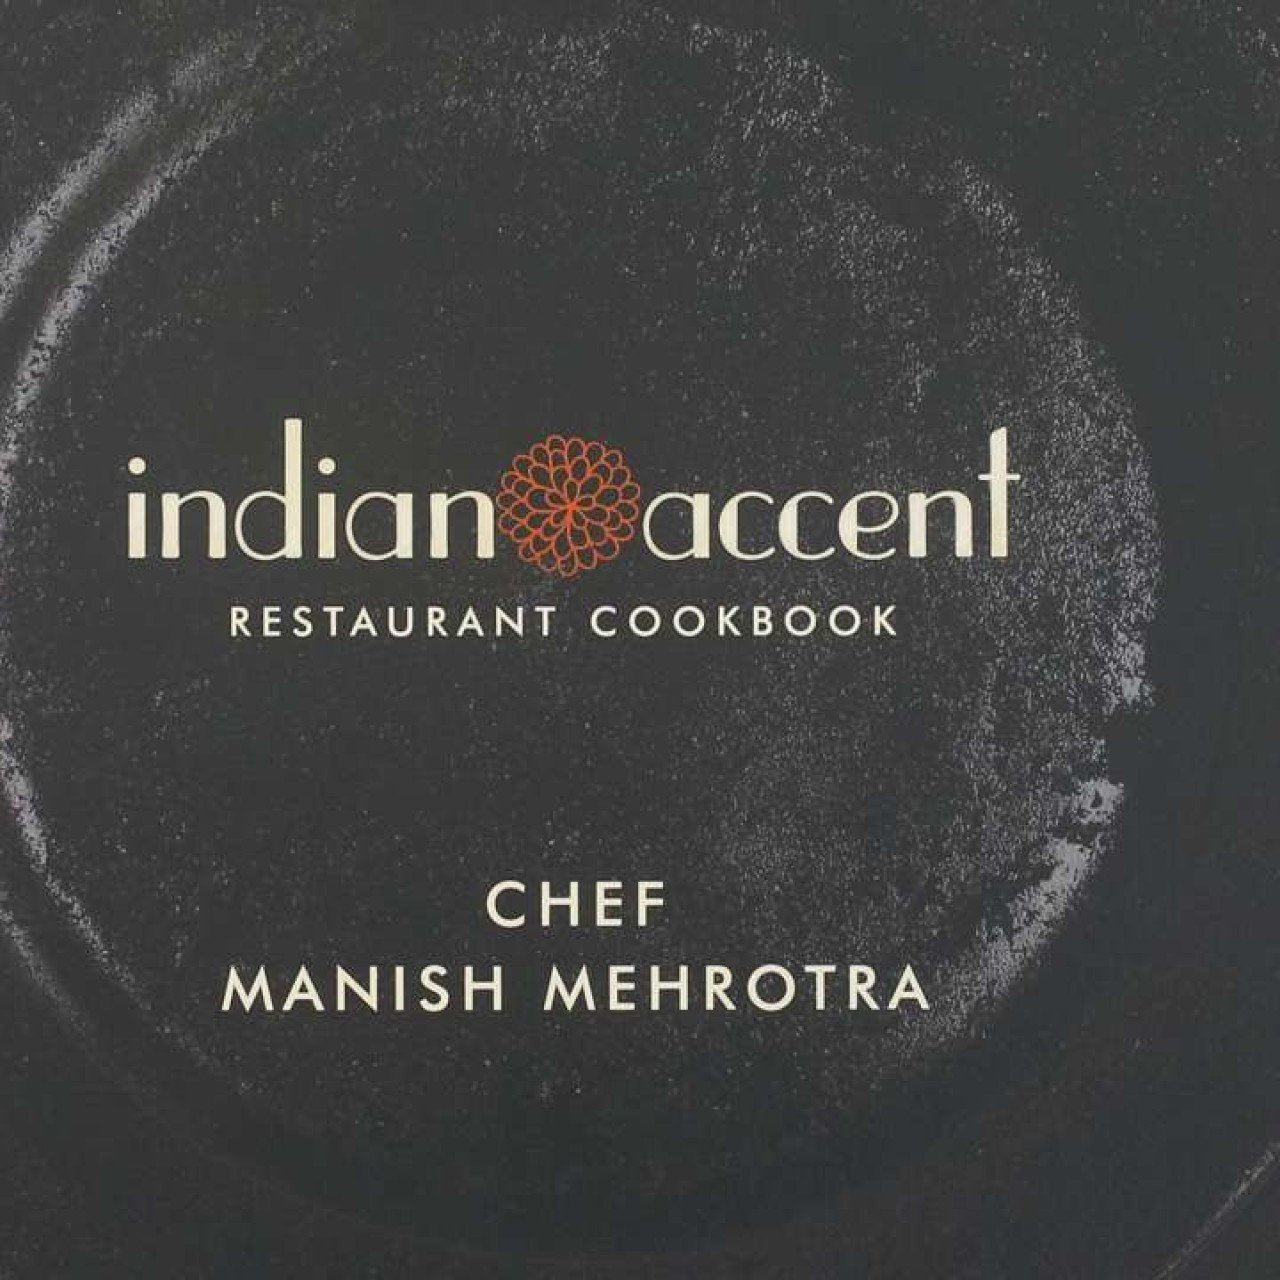 Curry gets a modern twist in the Indian Accent cookbook